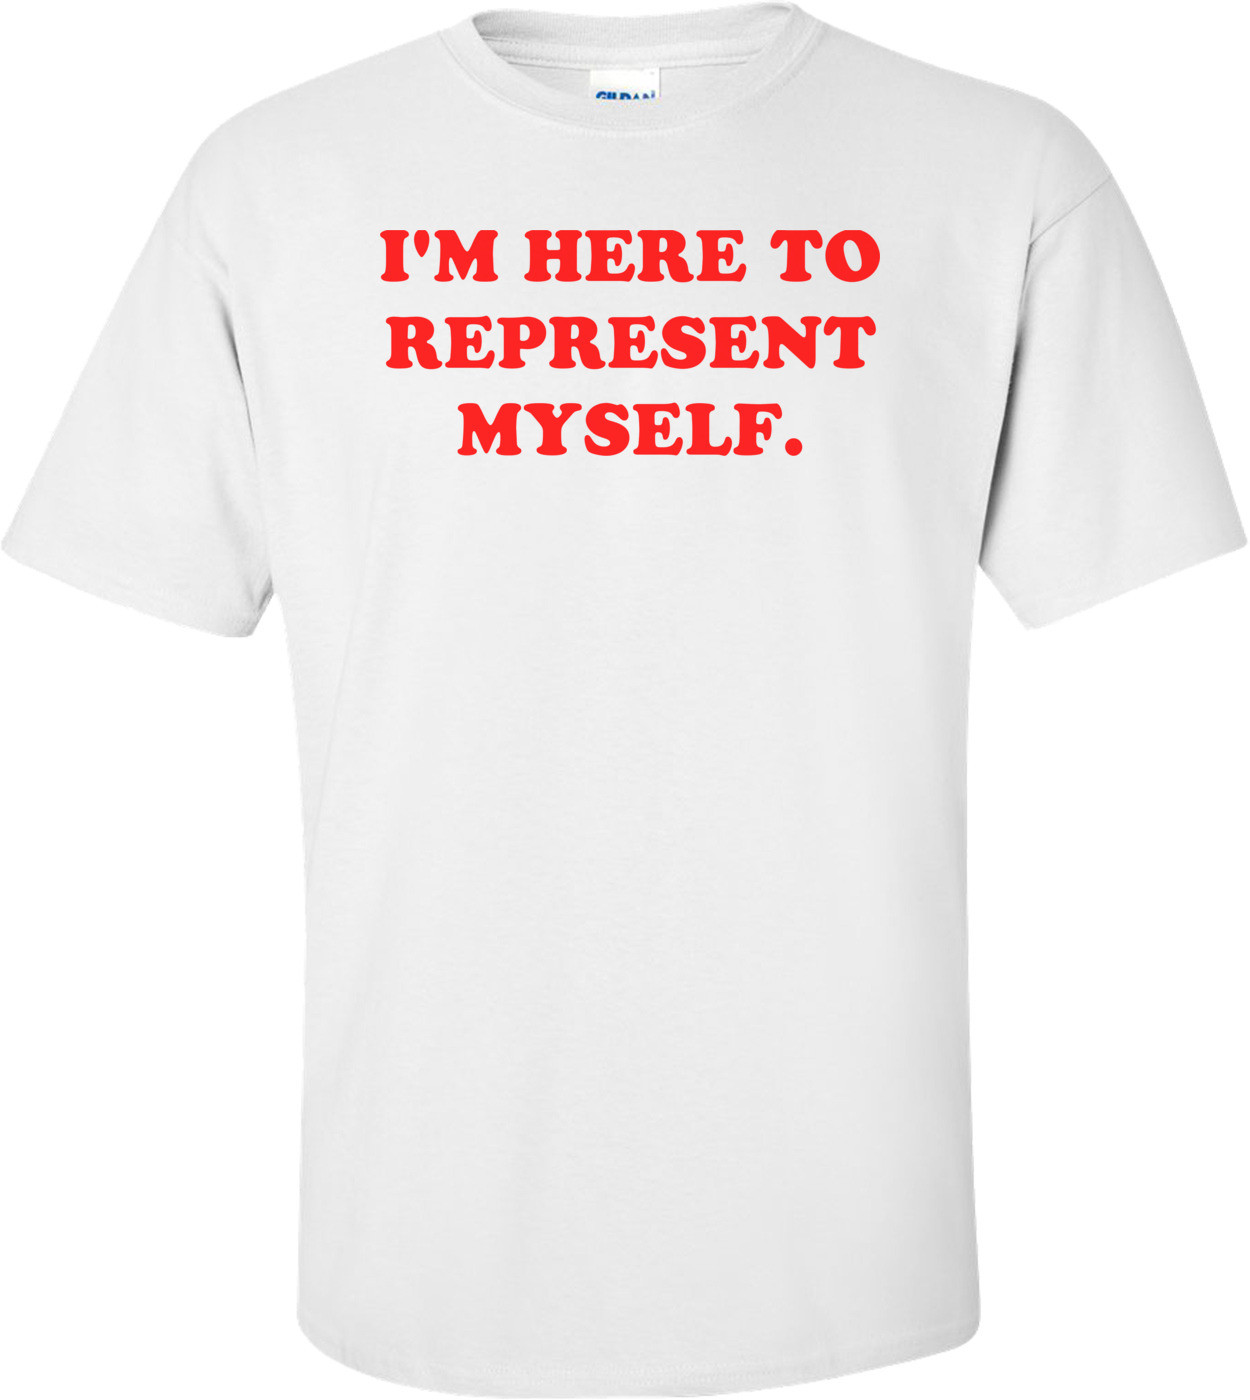 I'M HERE TO REPRESENT MYSELF. Shirt